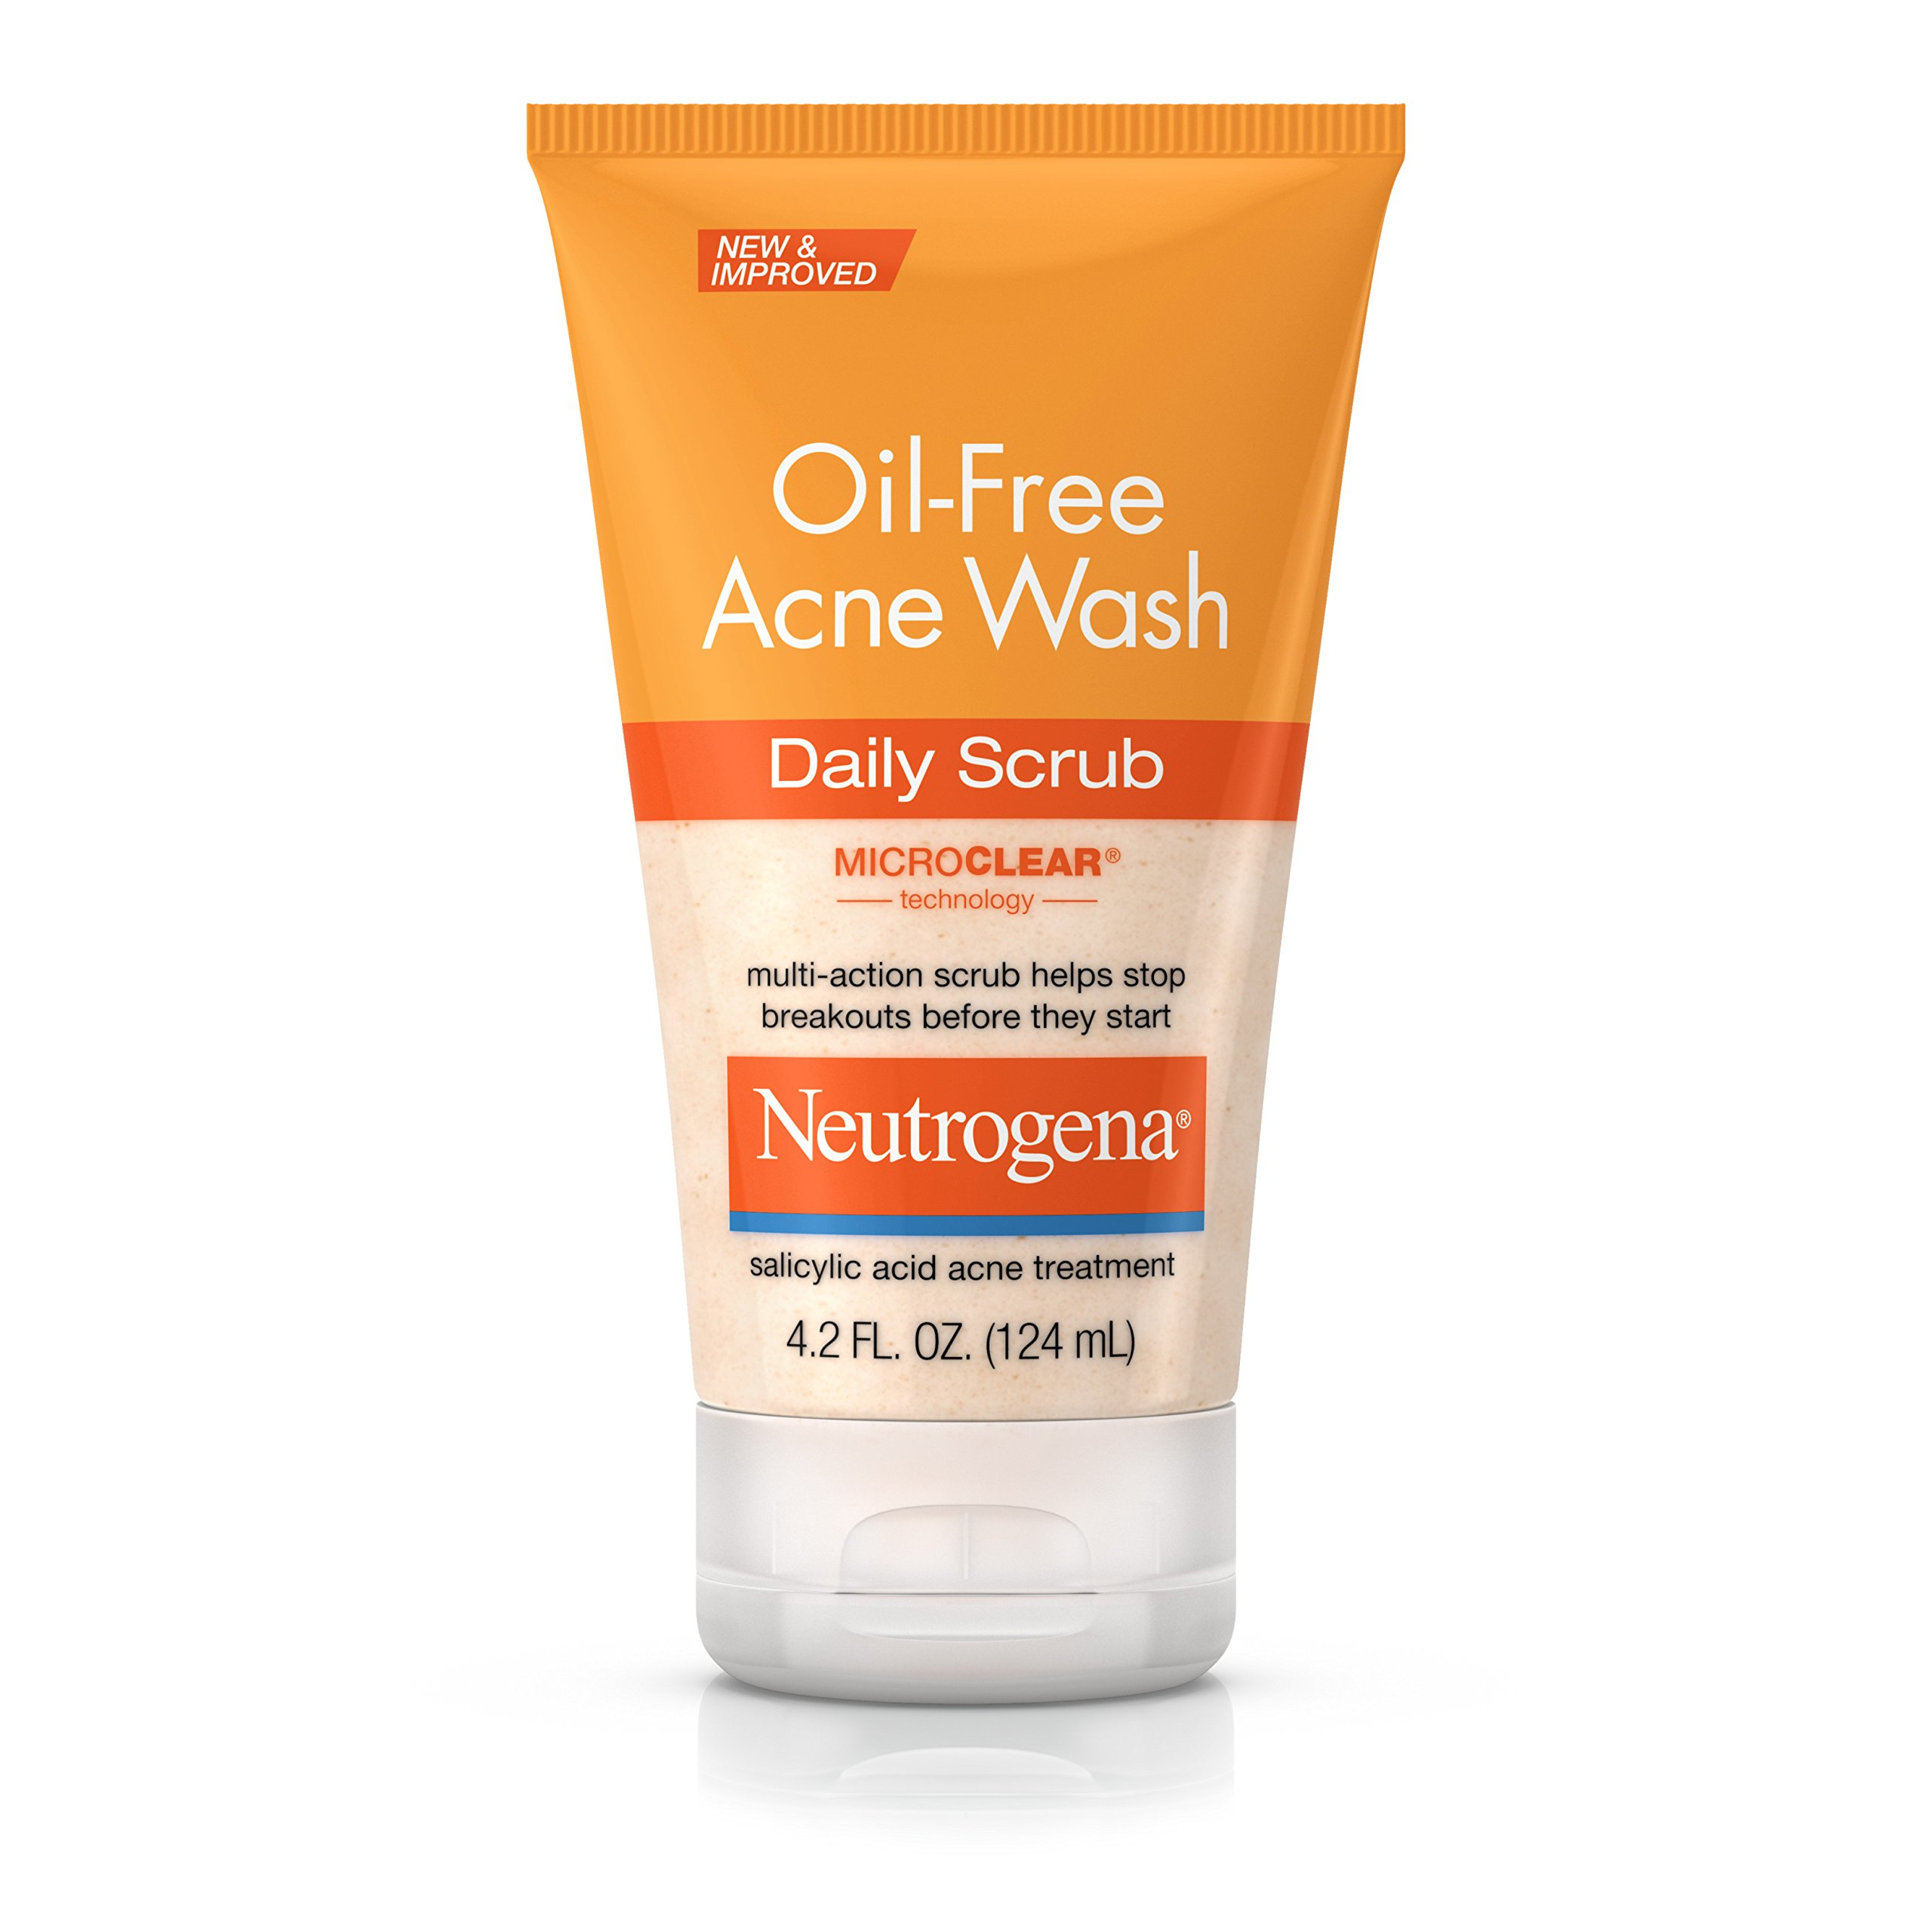 Neutrogena Oil-Free Acne Face Wash Daily Face Scrub with Salicylic Acid Acne Medicine, 4.2 fl. oz